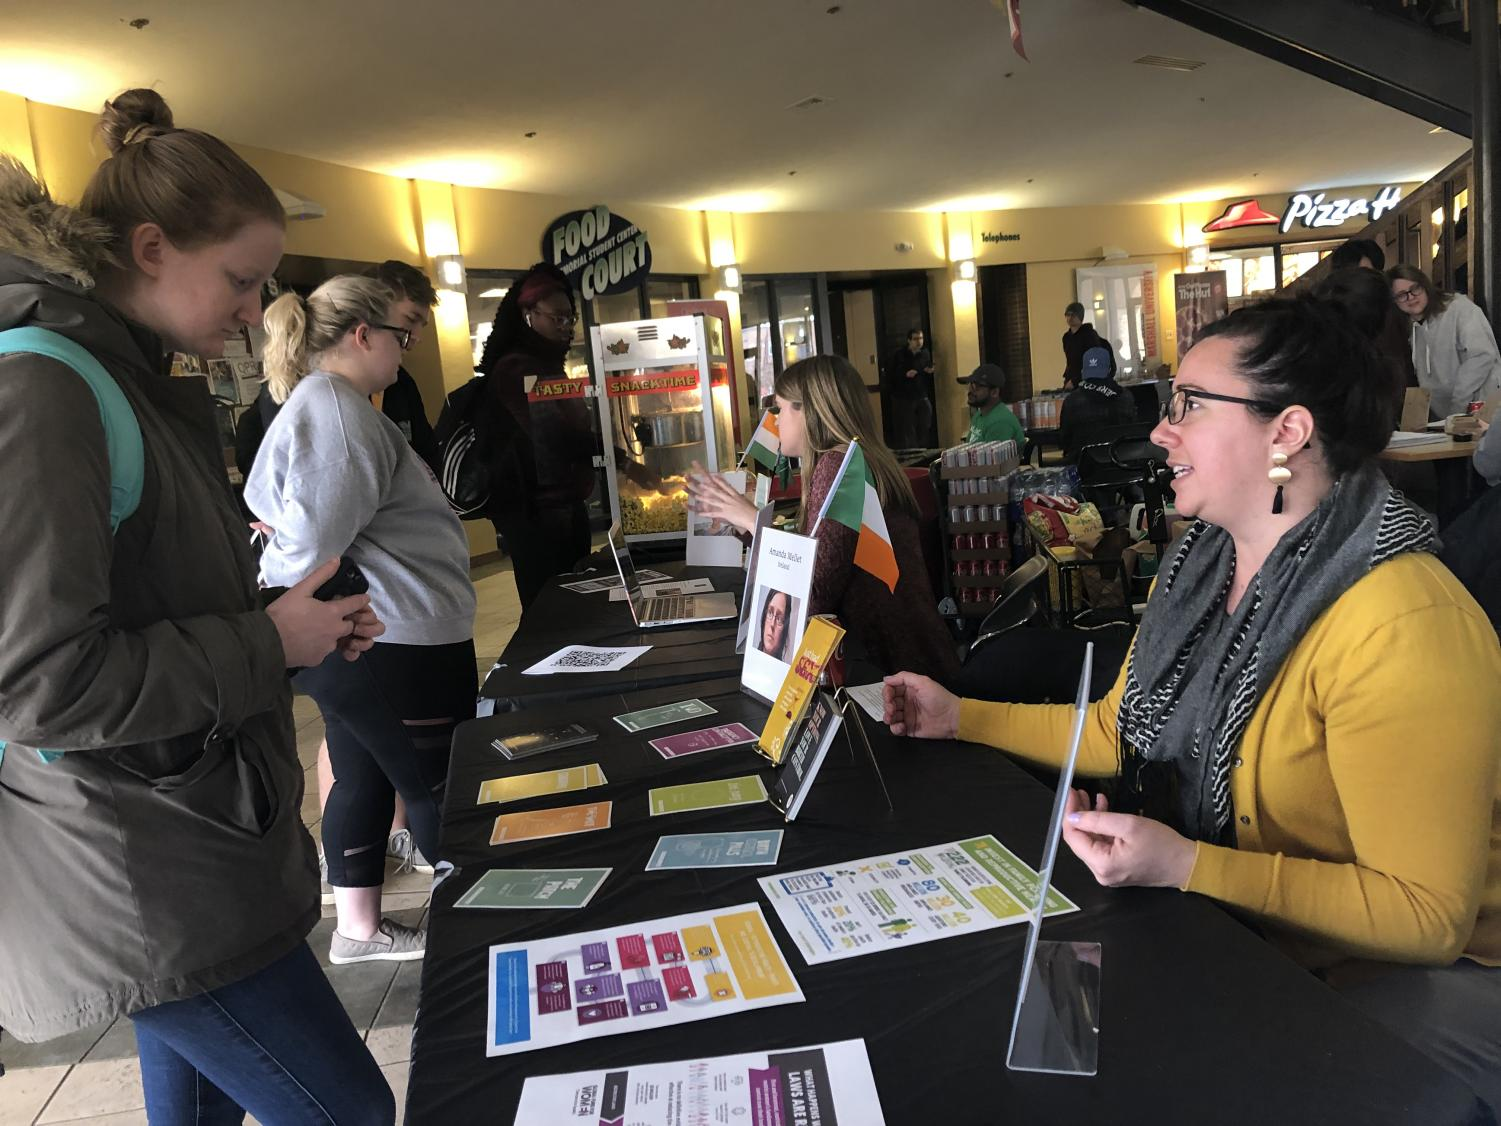 Claire Snyder, program coordinator for Marshall's Women and Gender Center, provides information to interested students in the Student Center.